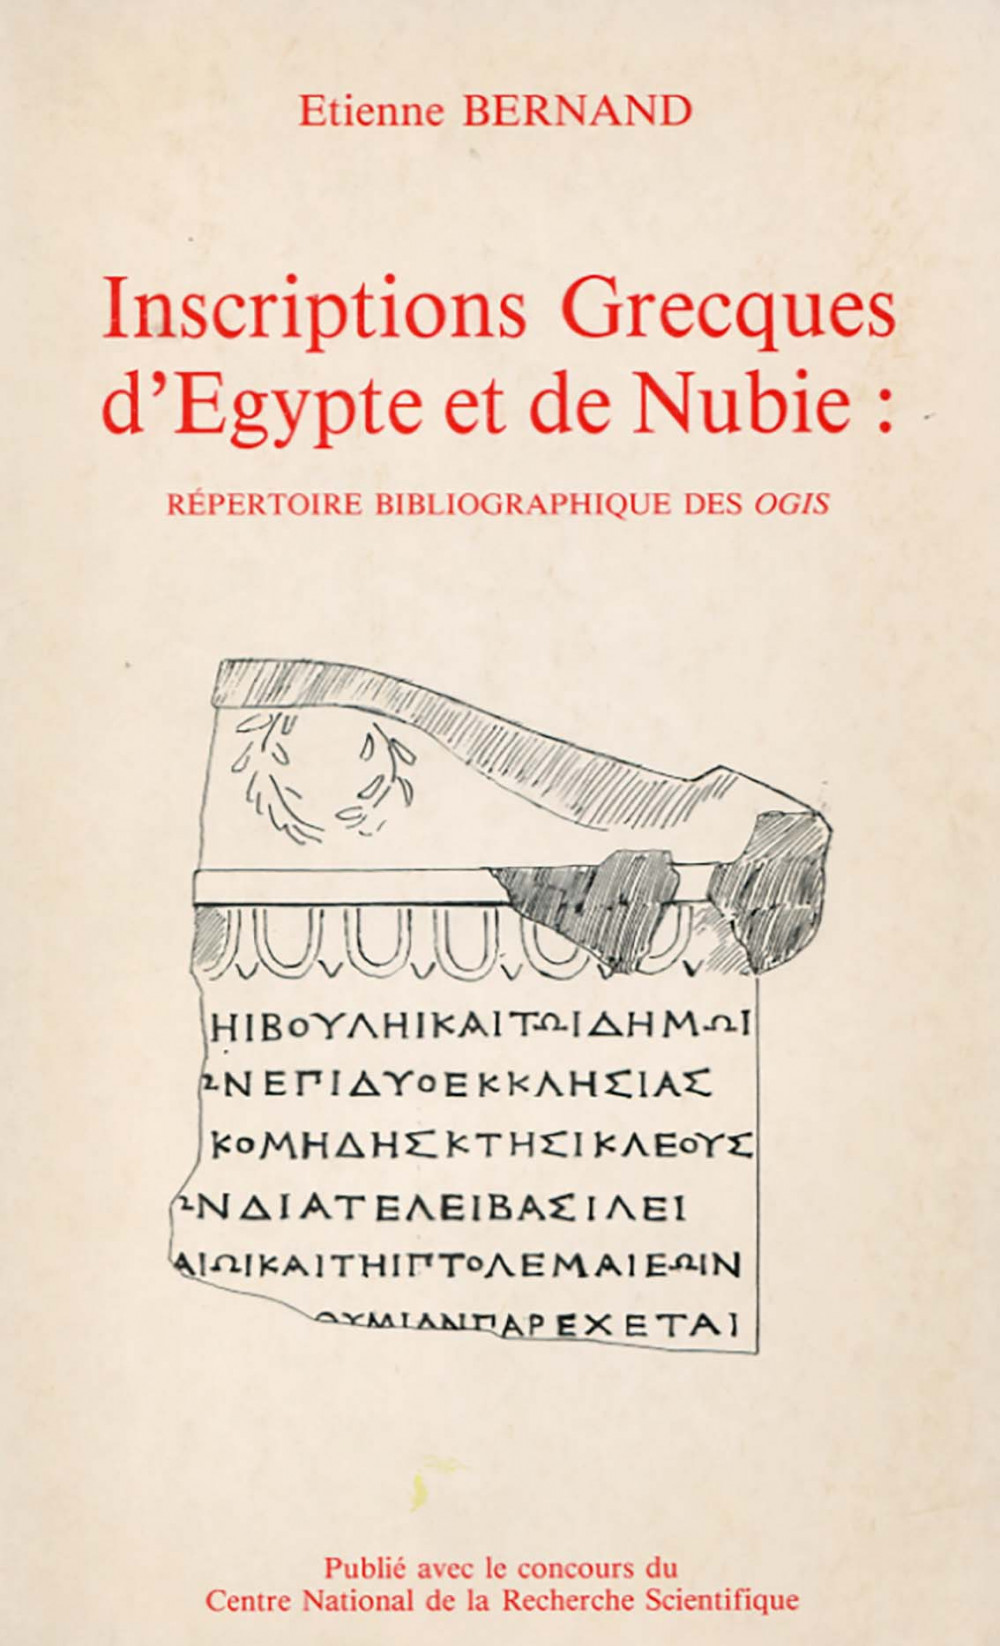 Inscriptions grecques d'Egypte et de Nubie